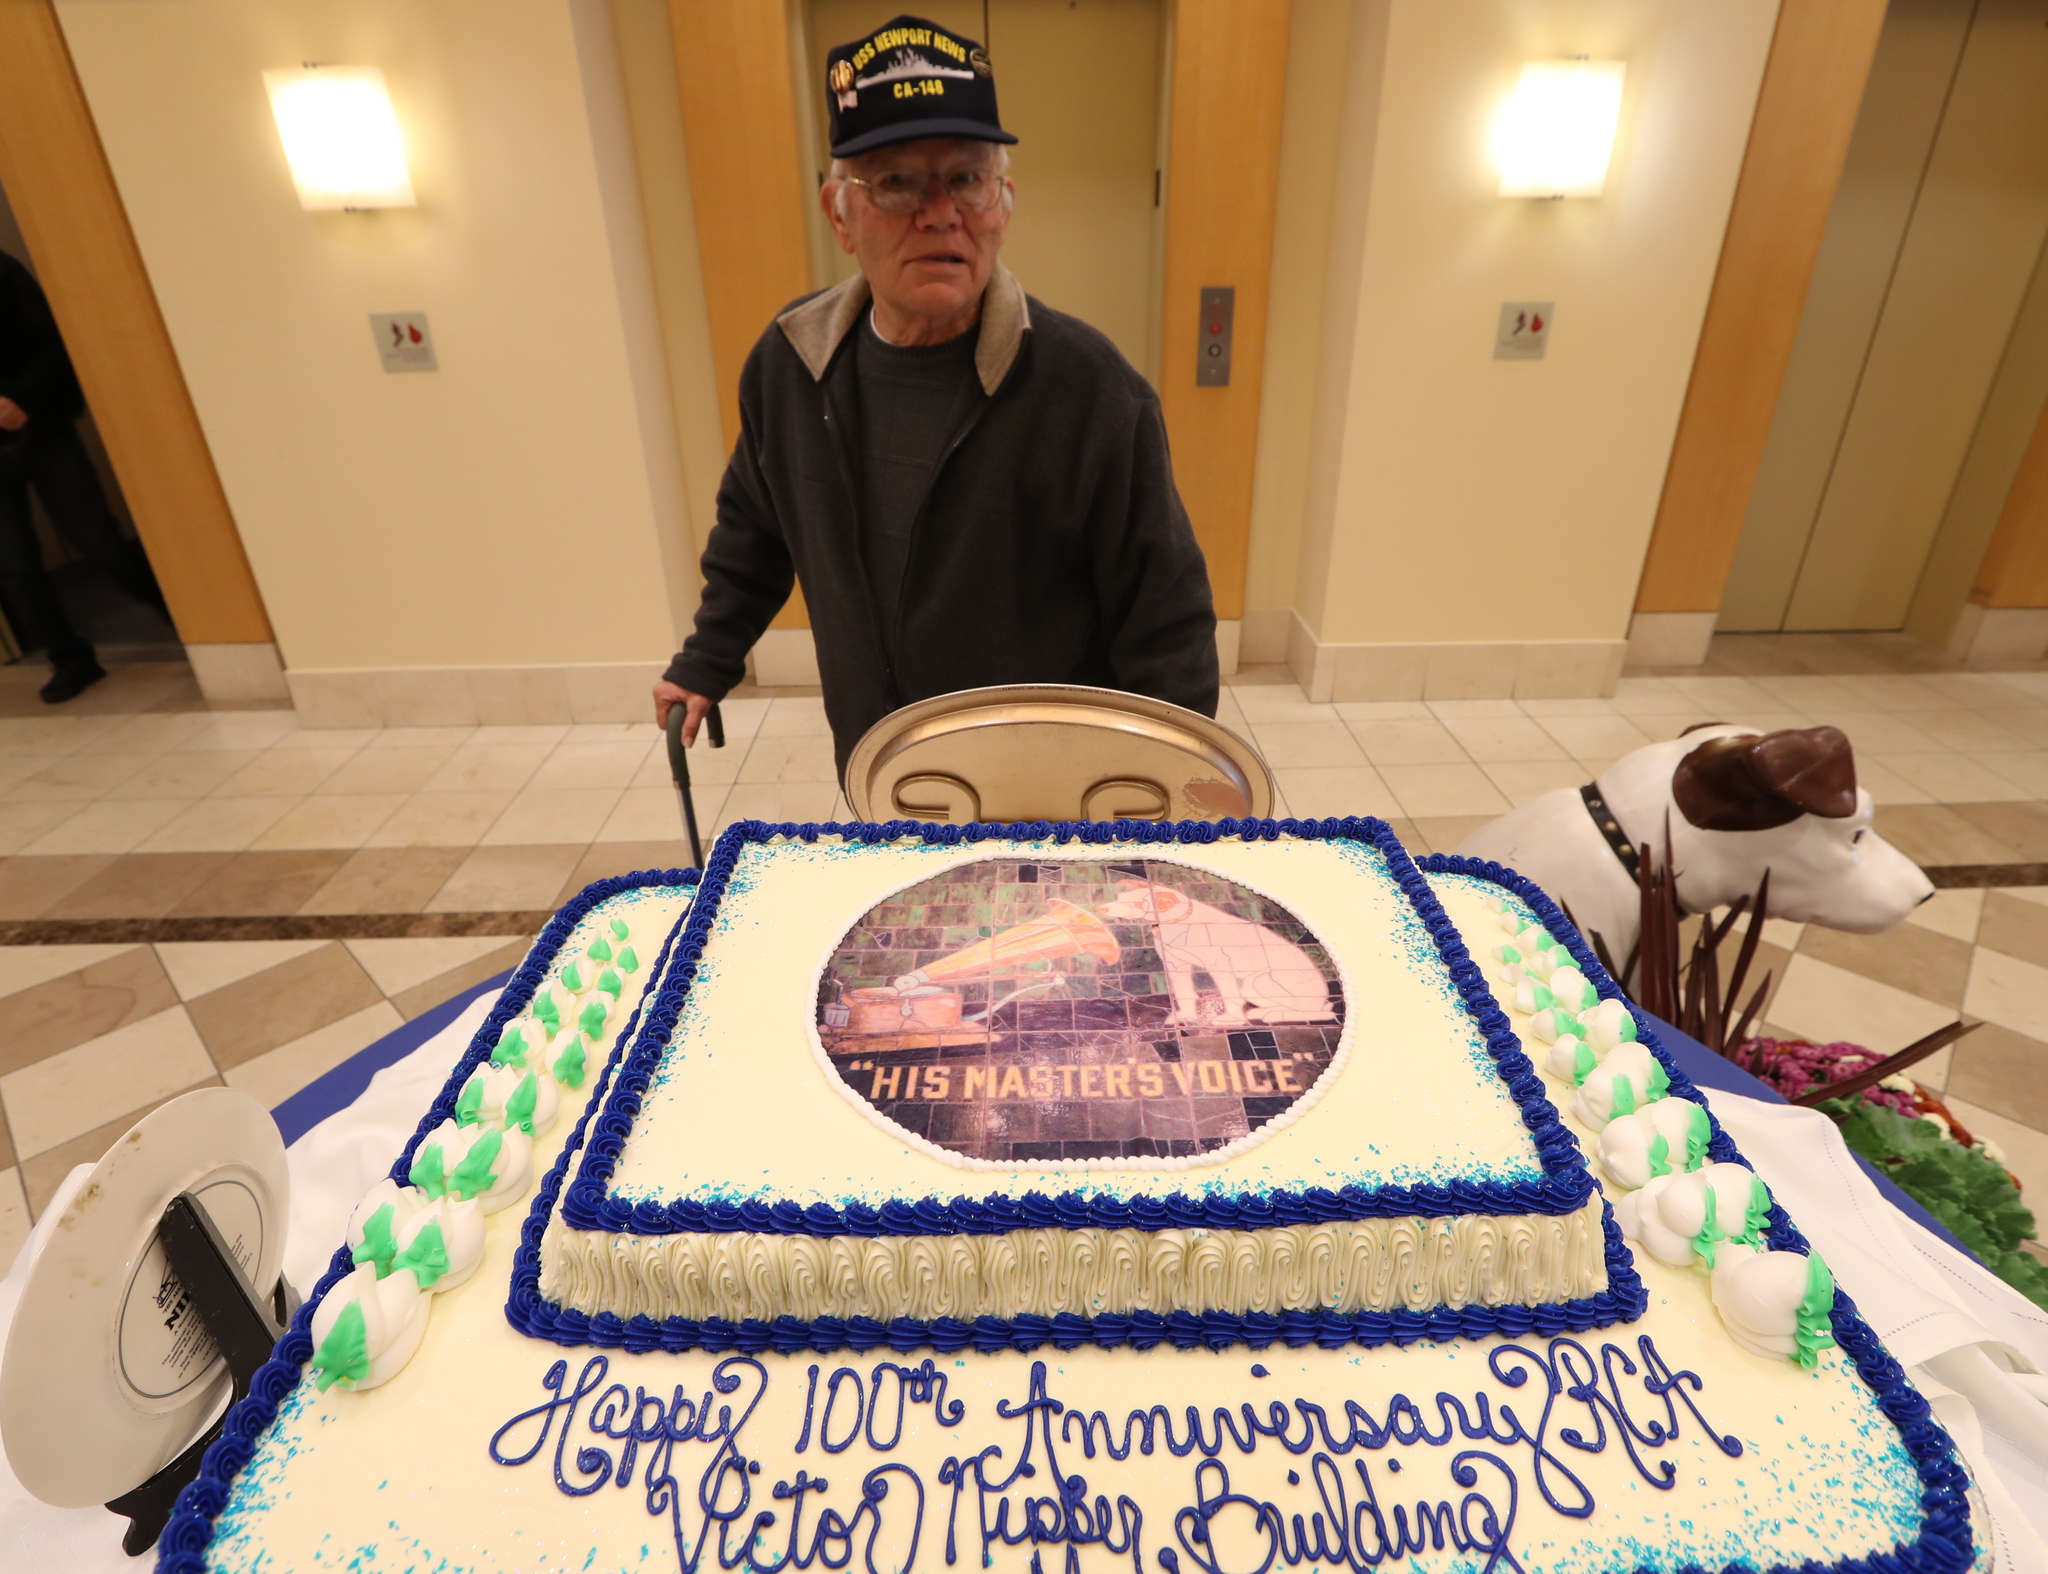 Bob Borchers checks out the cake at the gathering of former RCA employees. RCA´s Building 17 in Camden, affectionately known as the Nipper building and now home to the Victor Lofts apartments, is 100 years old this year.